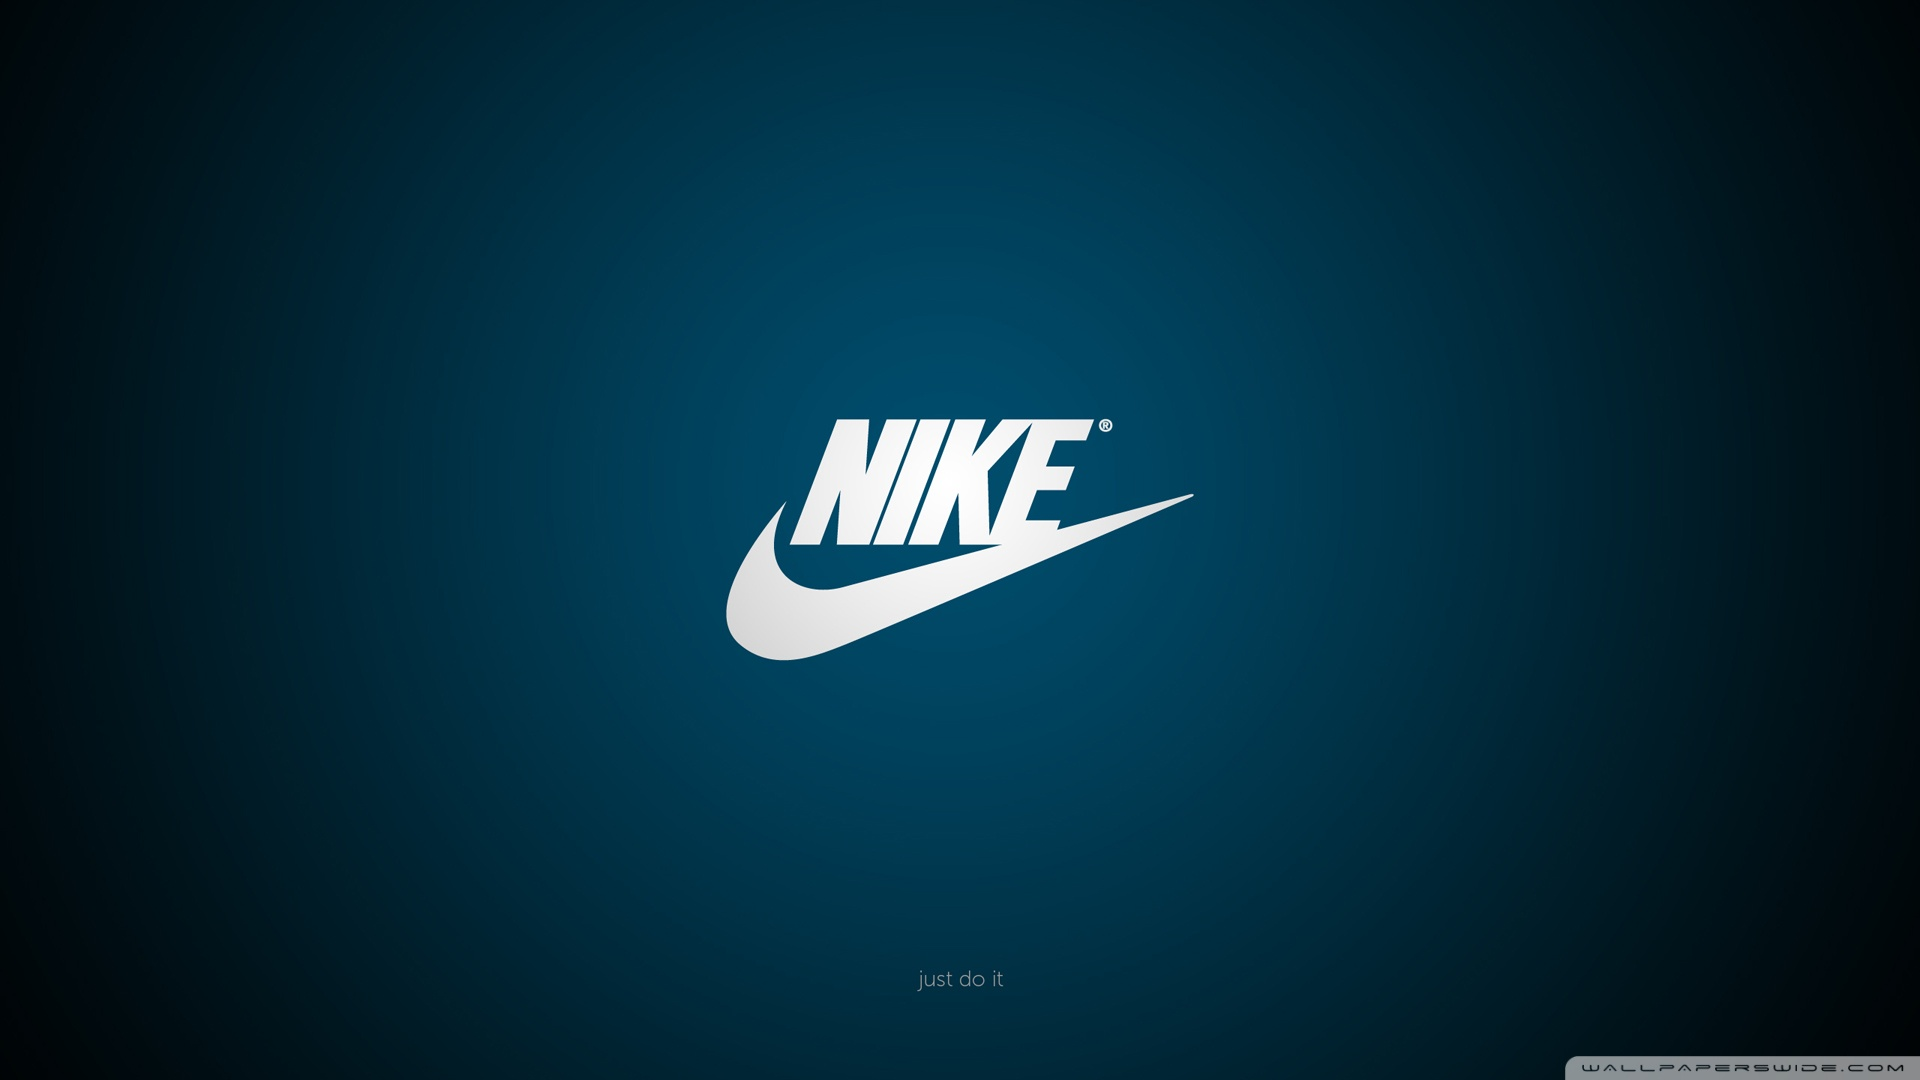 nike wallpaper logo #26